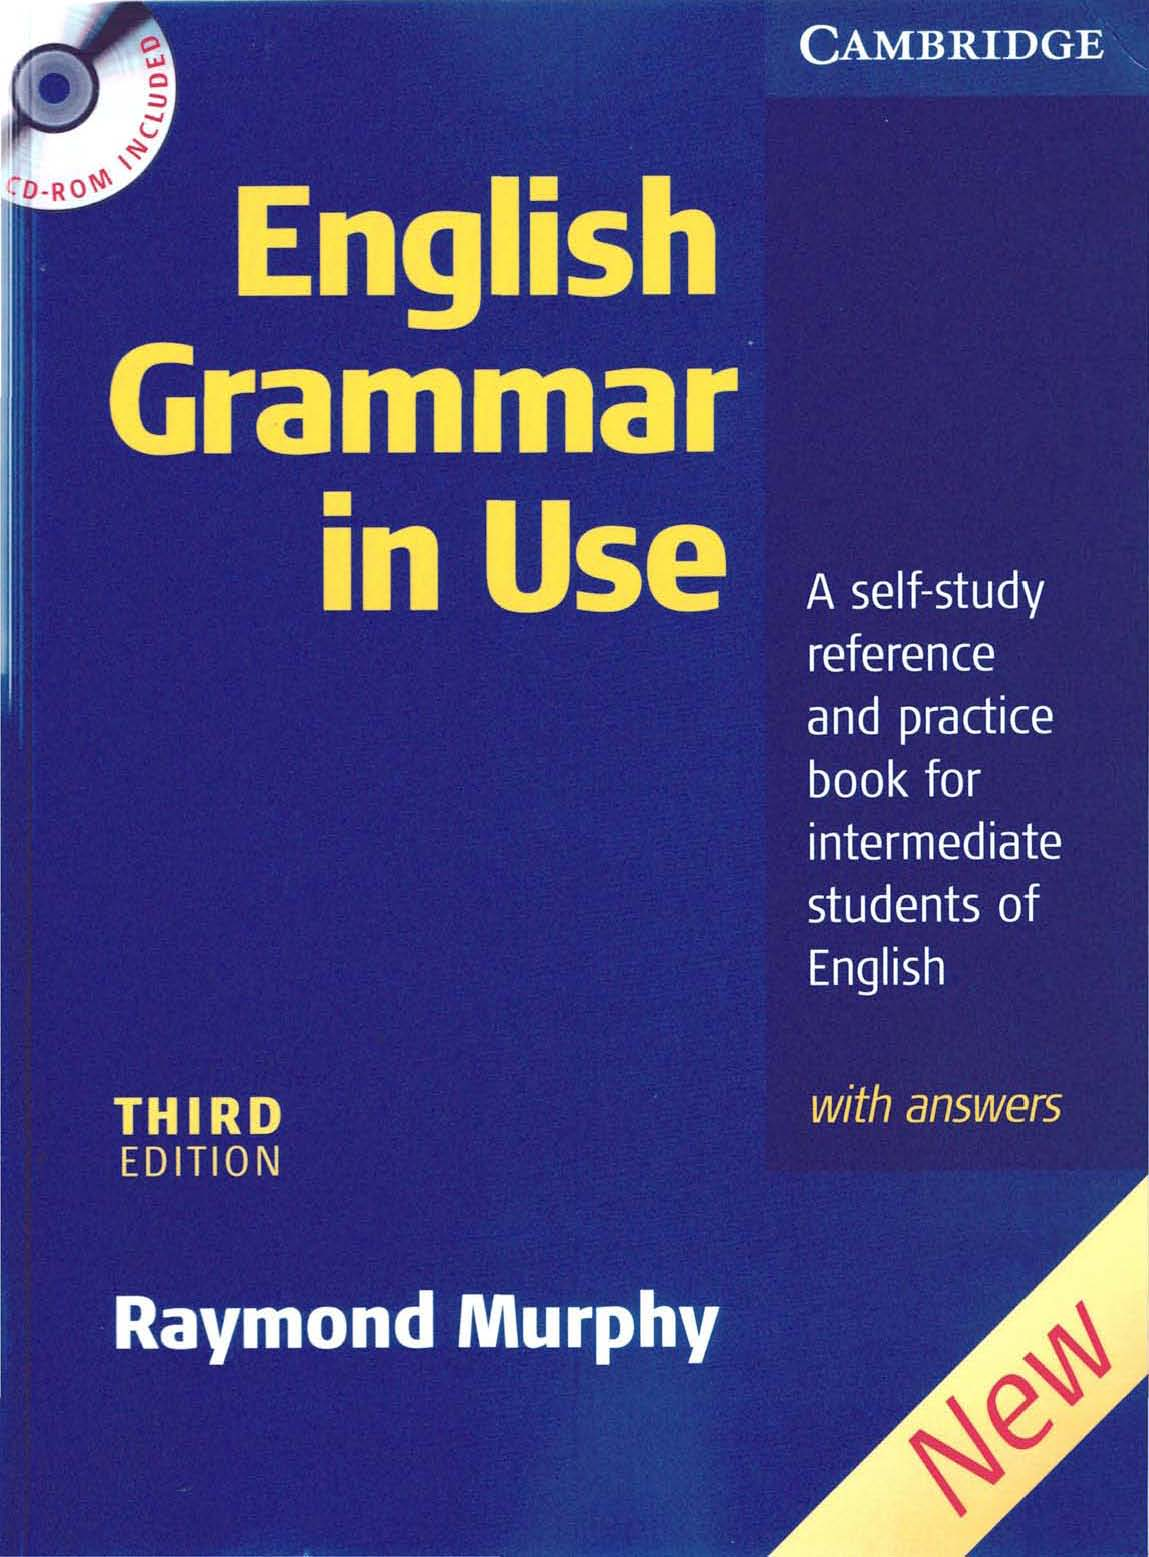 Download English Grammar In Use with Answers 3 edition